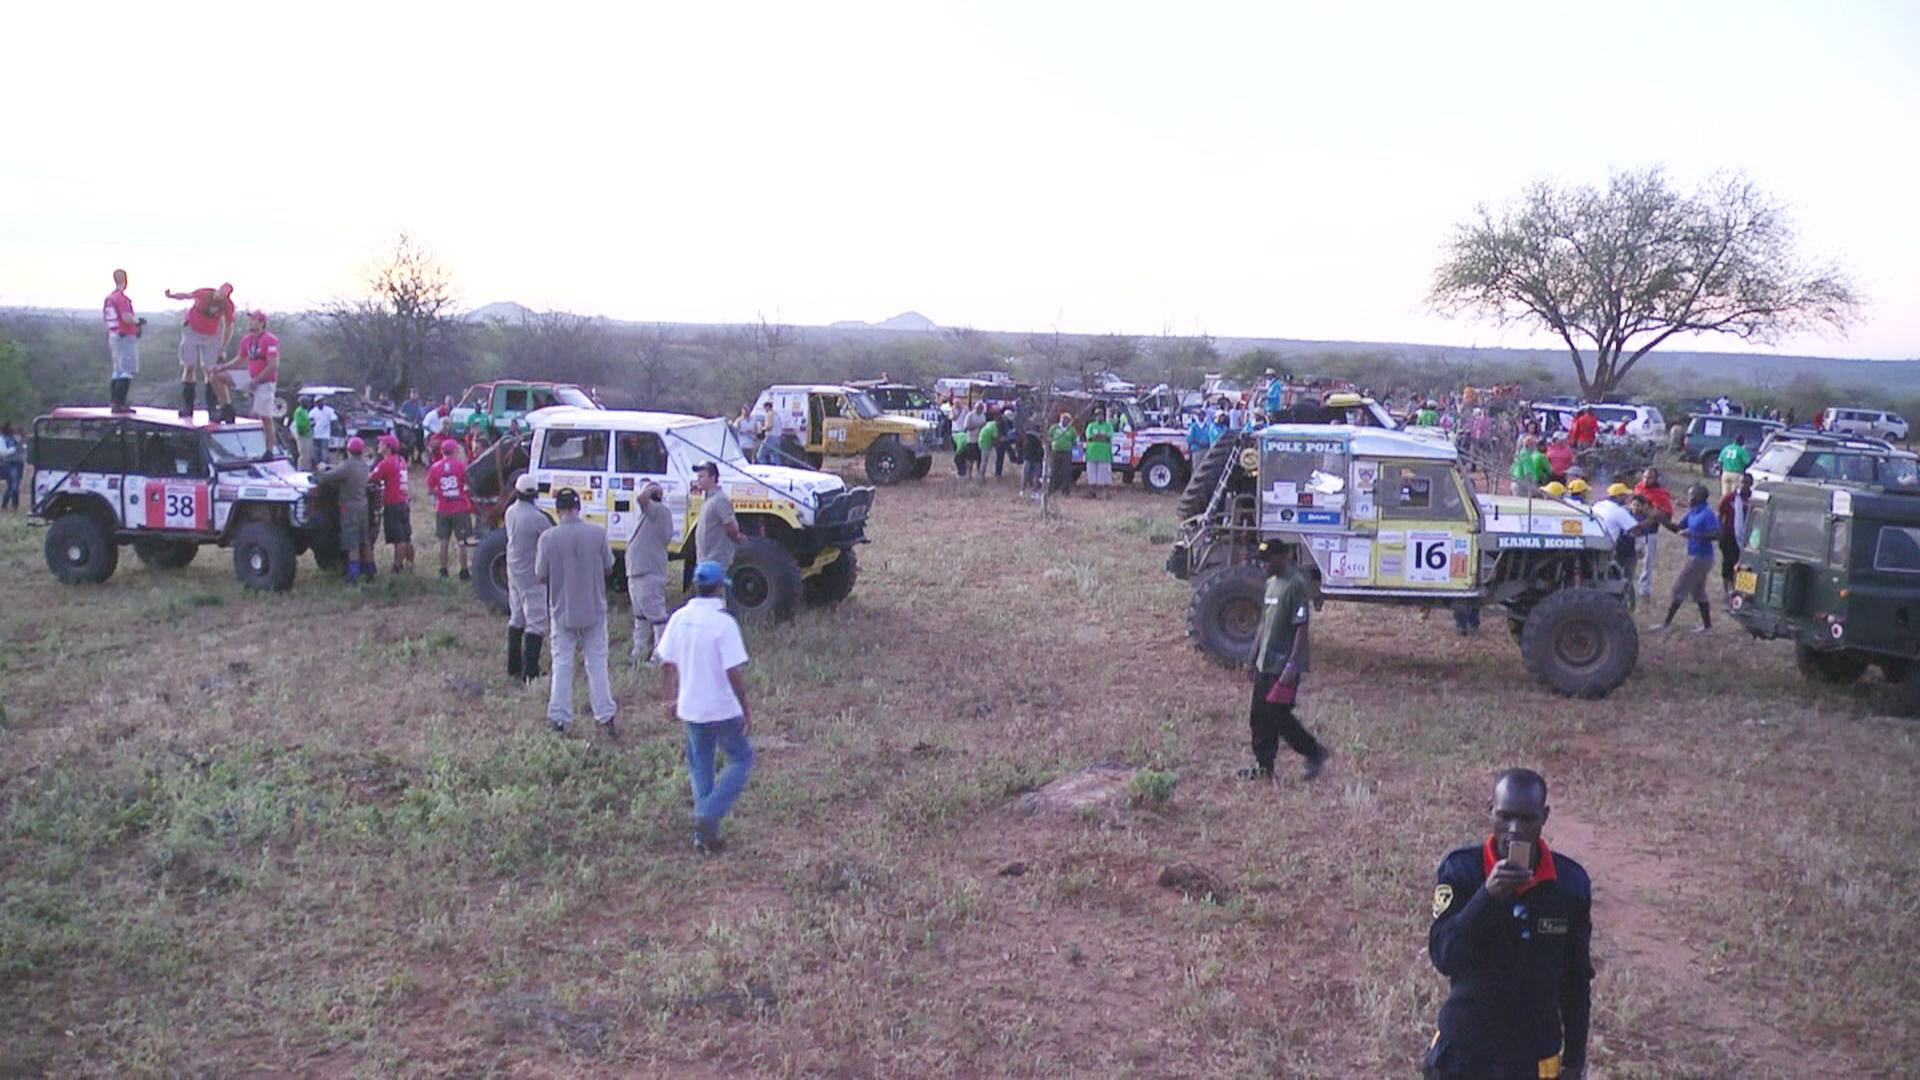 Rhino Charge competitors converge at the Kalepo Conservancy in Northern Kenya for the 2015 race.